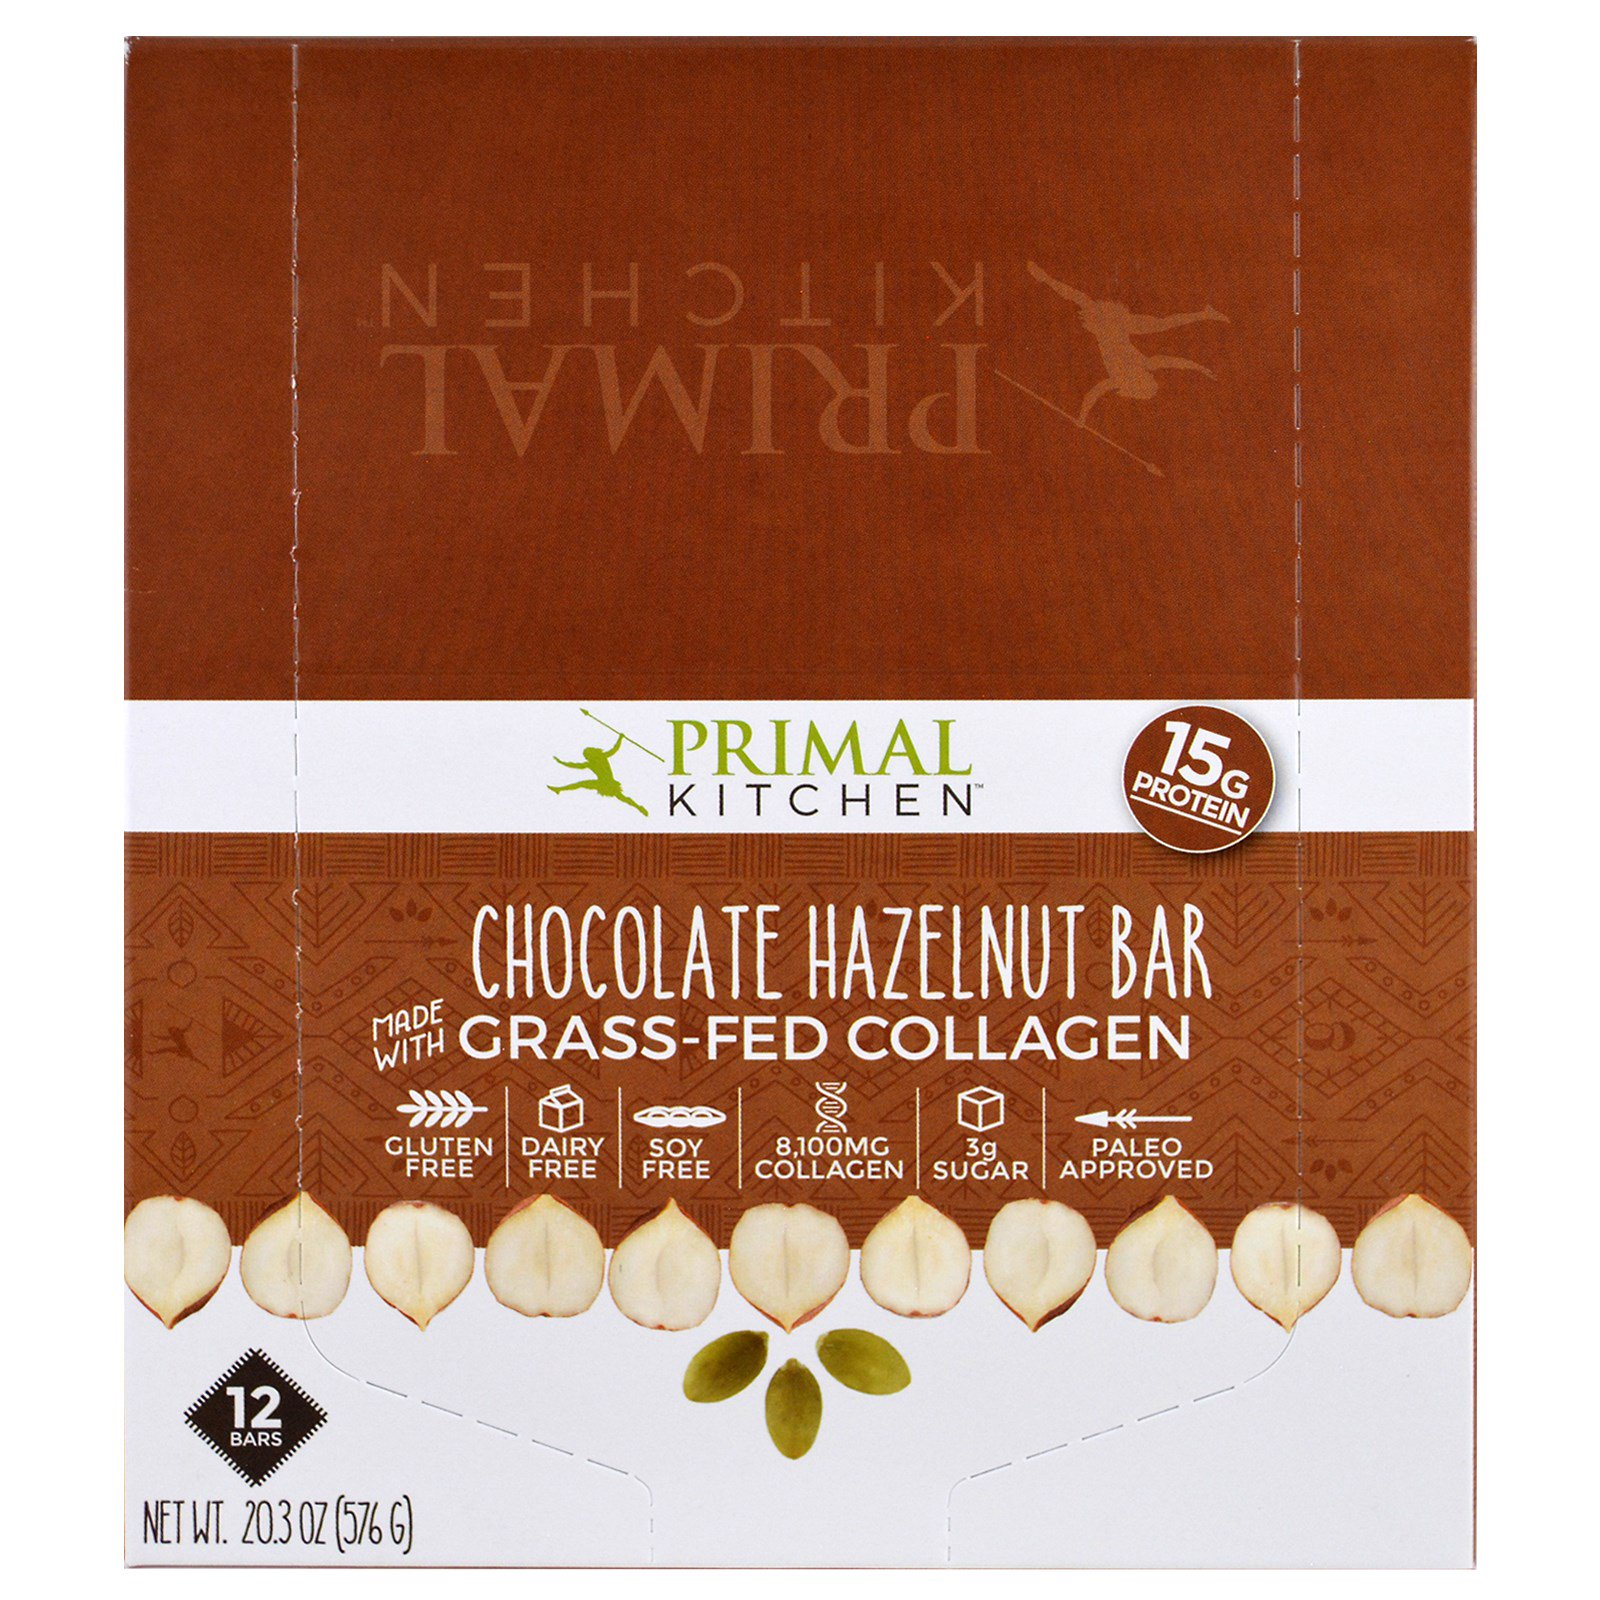 Primal Kitchen, Chocolate Hazelnut, Grass-Fed Collagen, 12 Bars, 1.7 ...